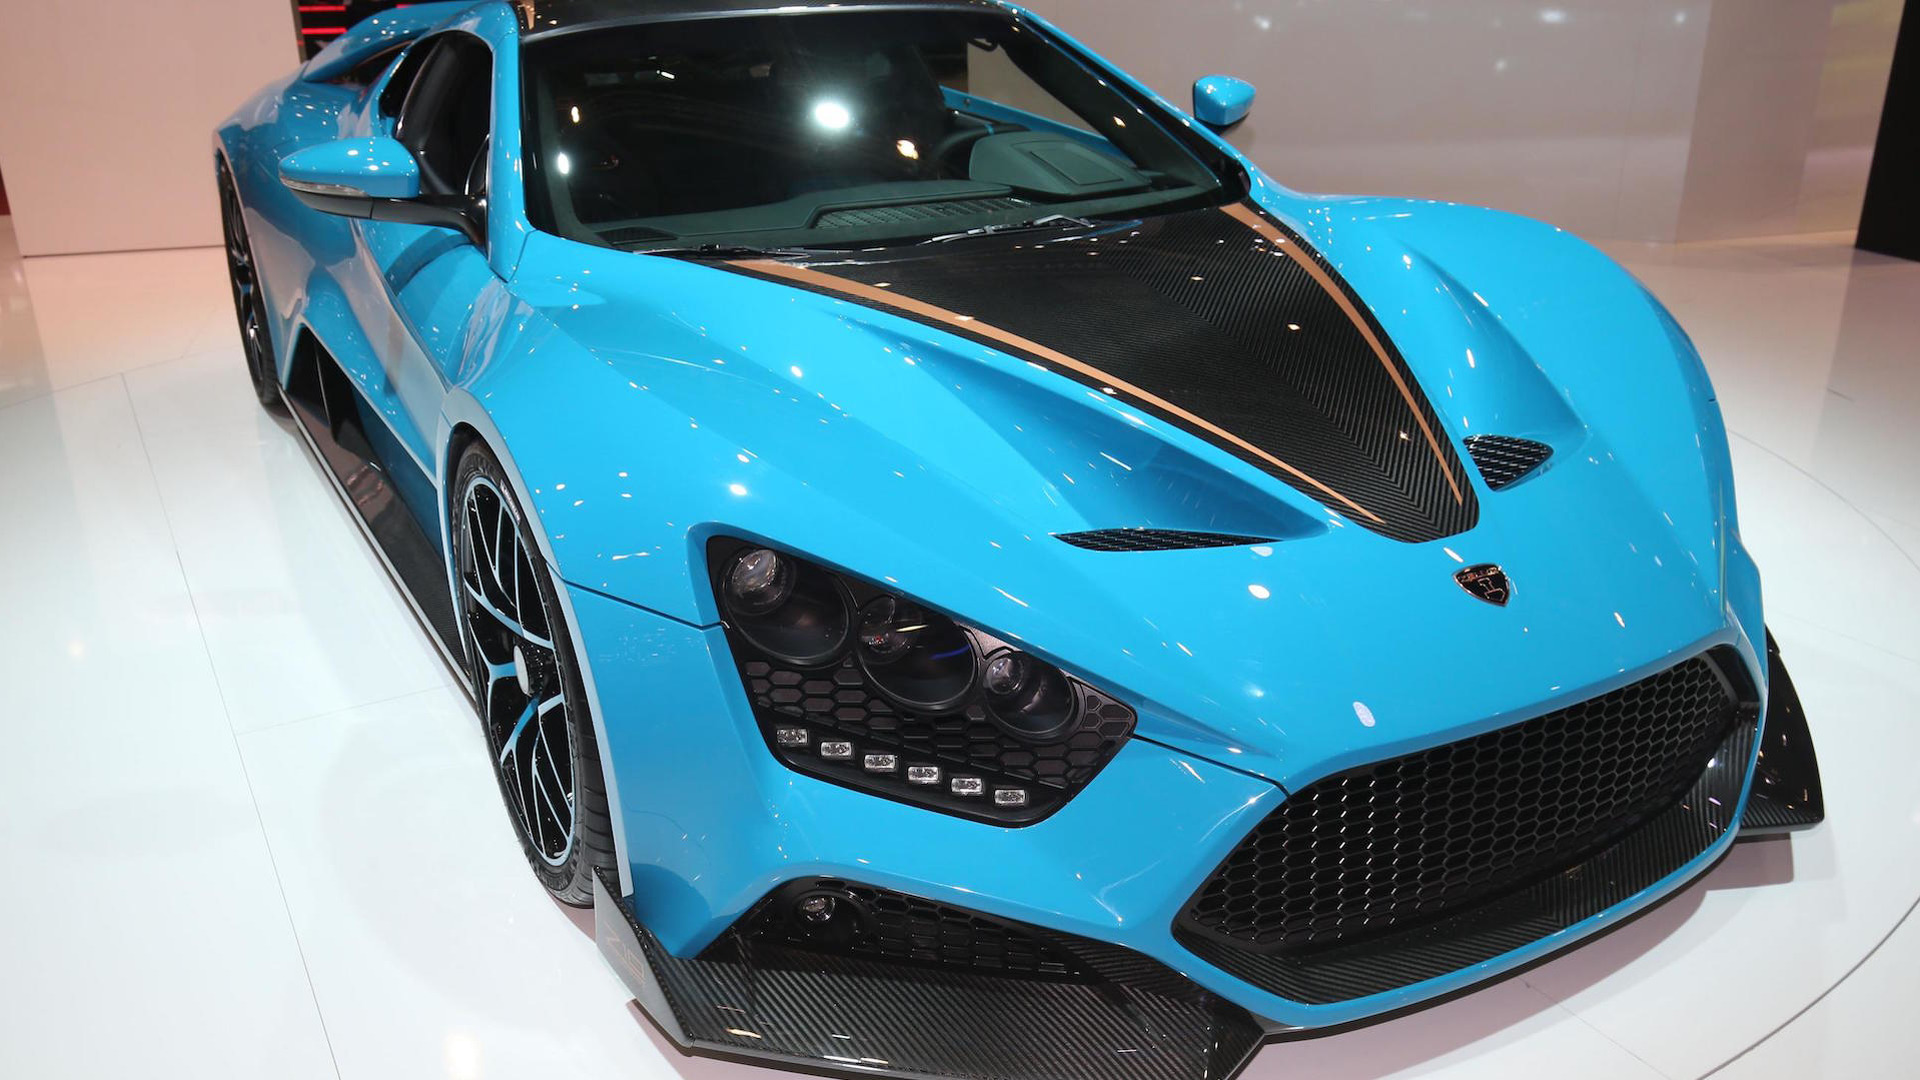 Zenvo Ts1 Gt Has 1 163 Hp Costs 1 2 Million And Is Very Blue